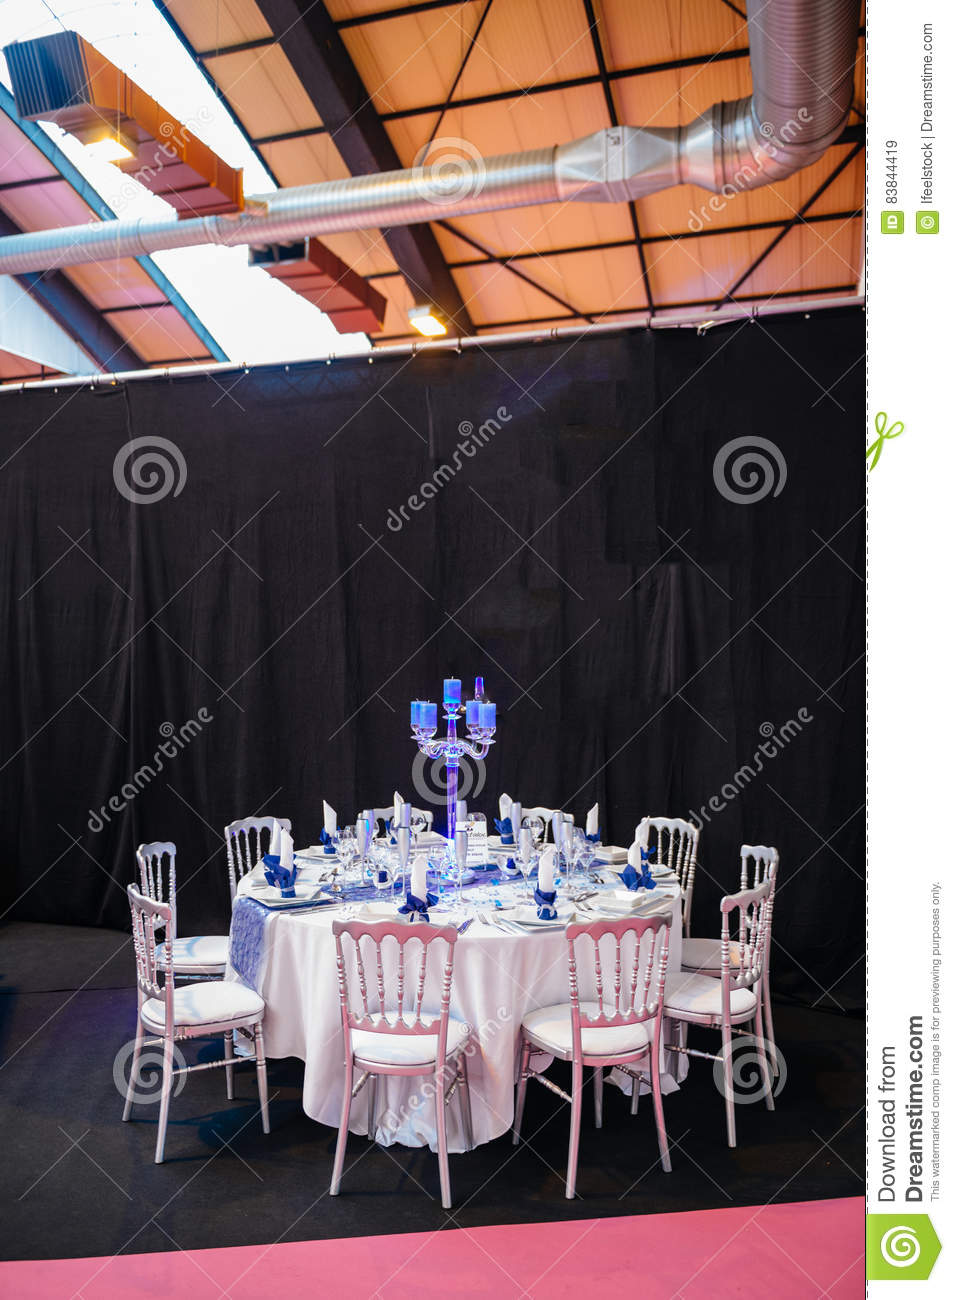 Luxury Wedding Table Setting In French Romantic Style Editorial Stock Image Image Of Cuisine Bride 83844419